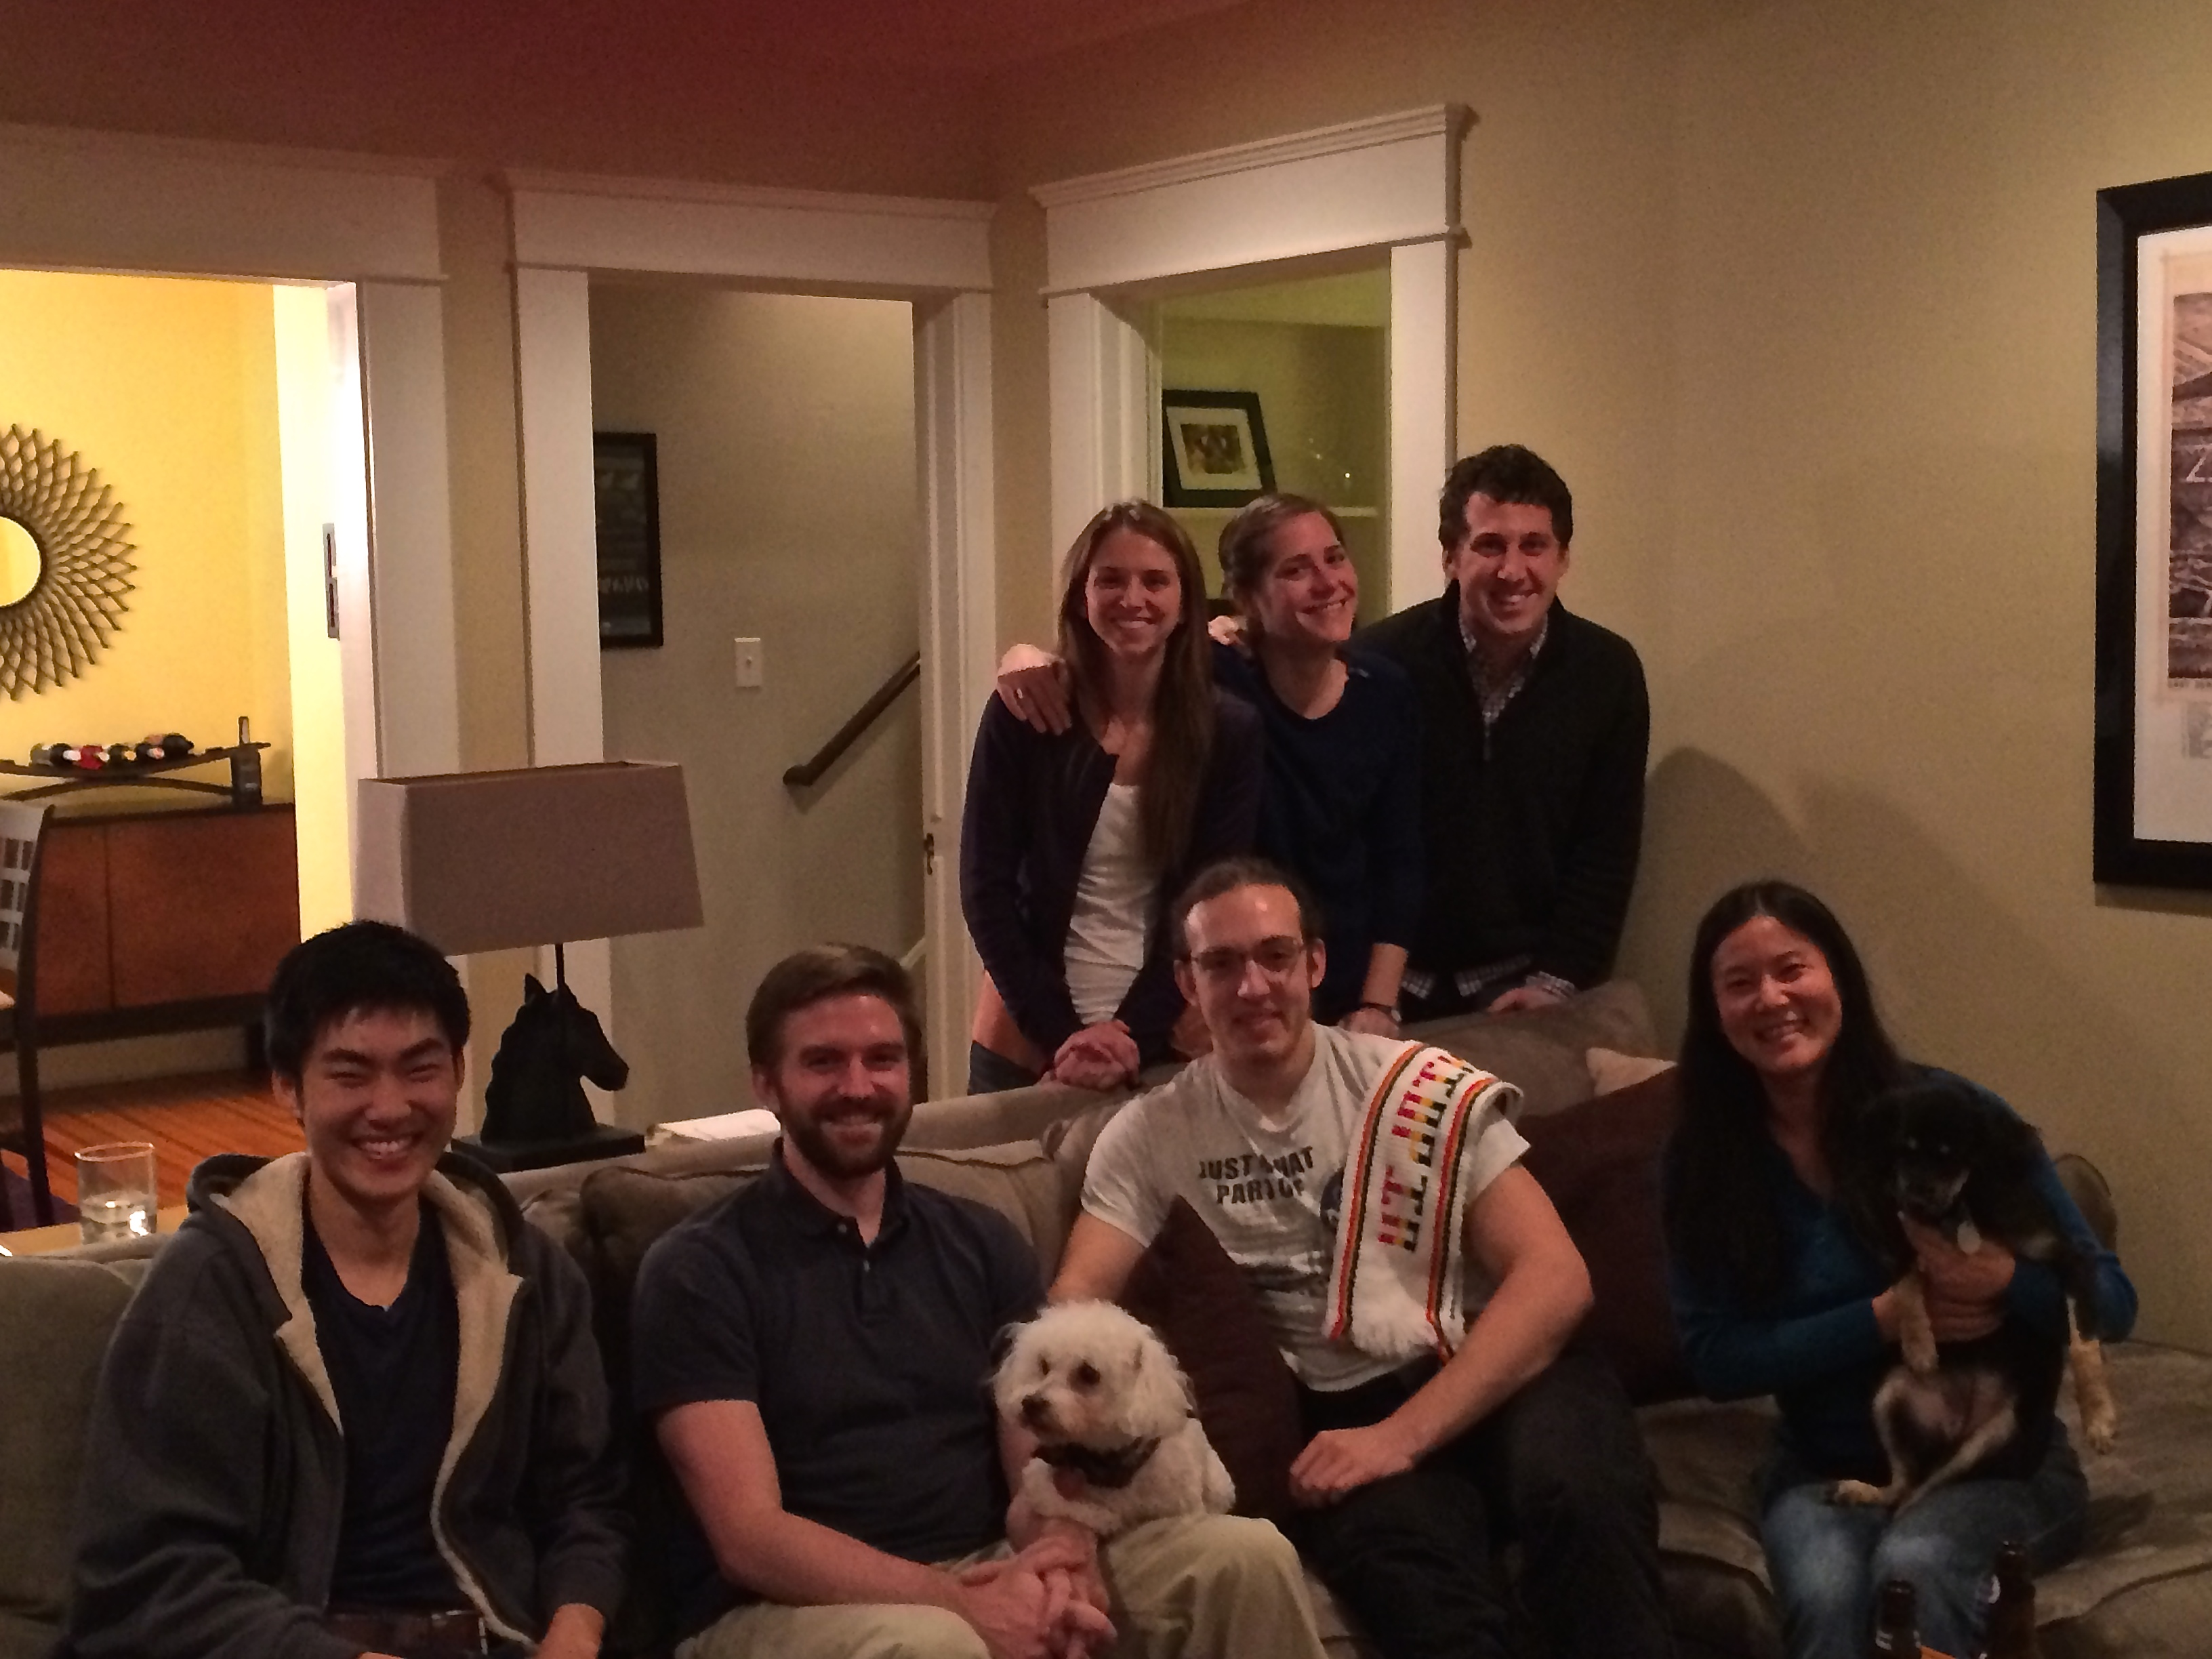 Happy holidays 2014: Amanda, Amanda, Noah, Mike, Steve, Tauras, Jenny, and Malthus and George the dogs